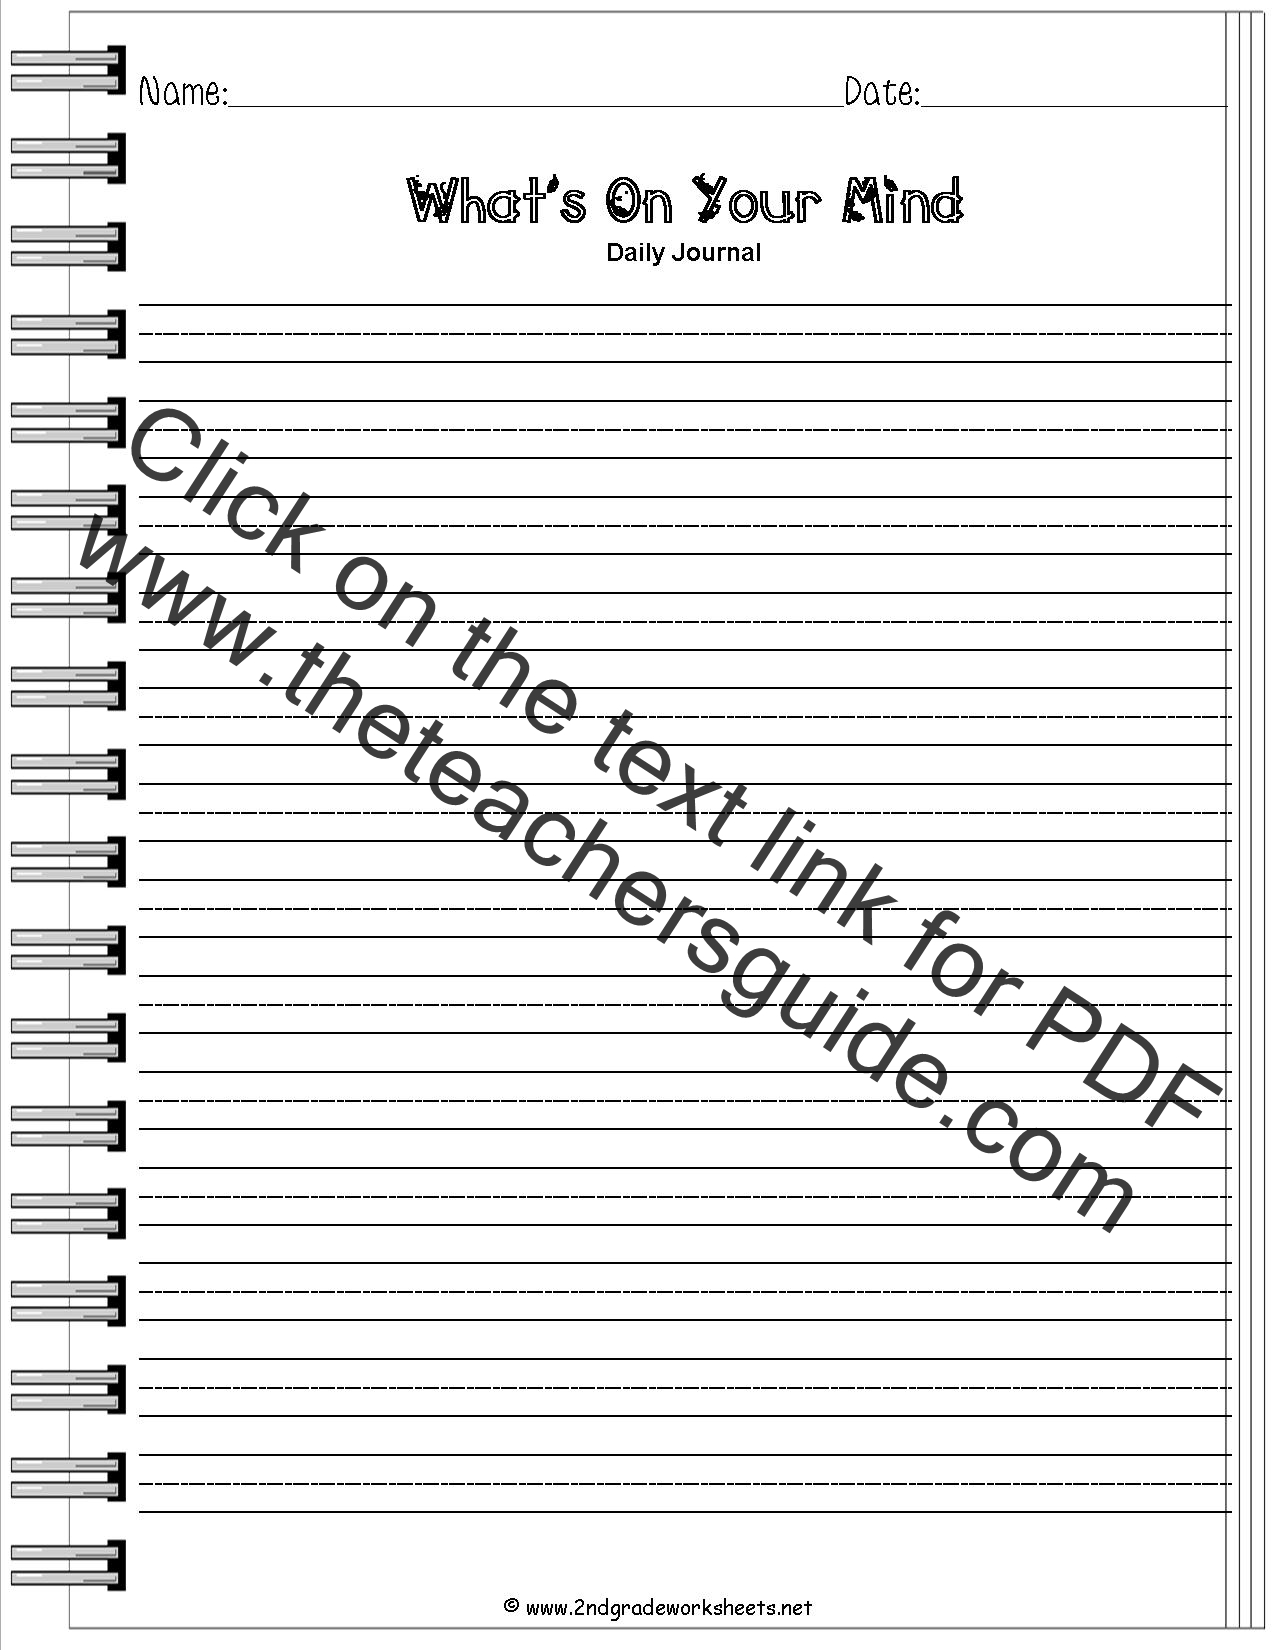 Worksheet 2nd Grade Writing Prompts Worksheets Grass Fedjp Worksheet Study Site